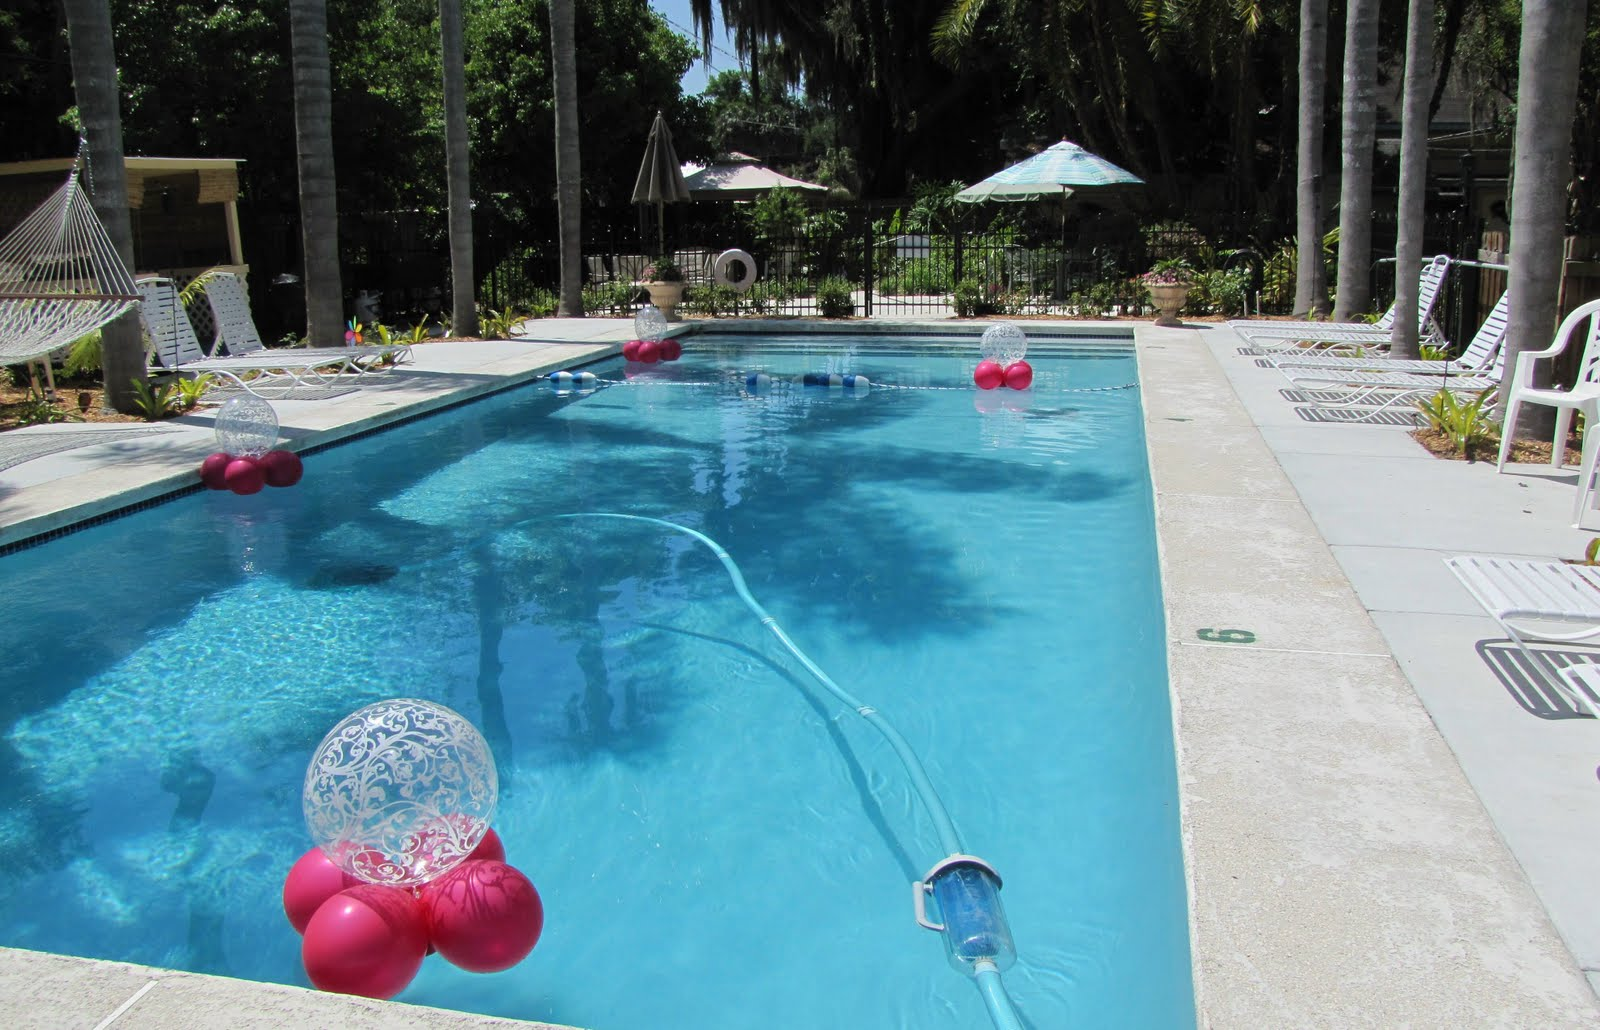 Party people event decorating company stanford inn bridal for Outdoor pool decorating ideas